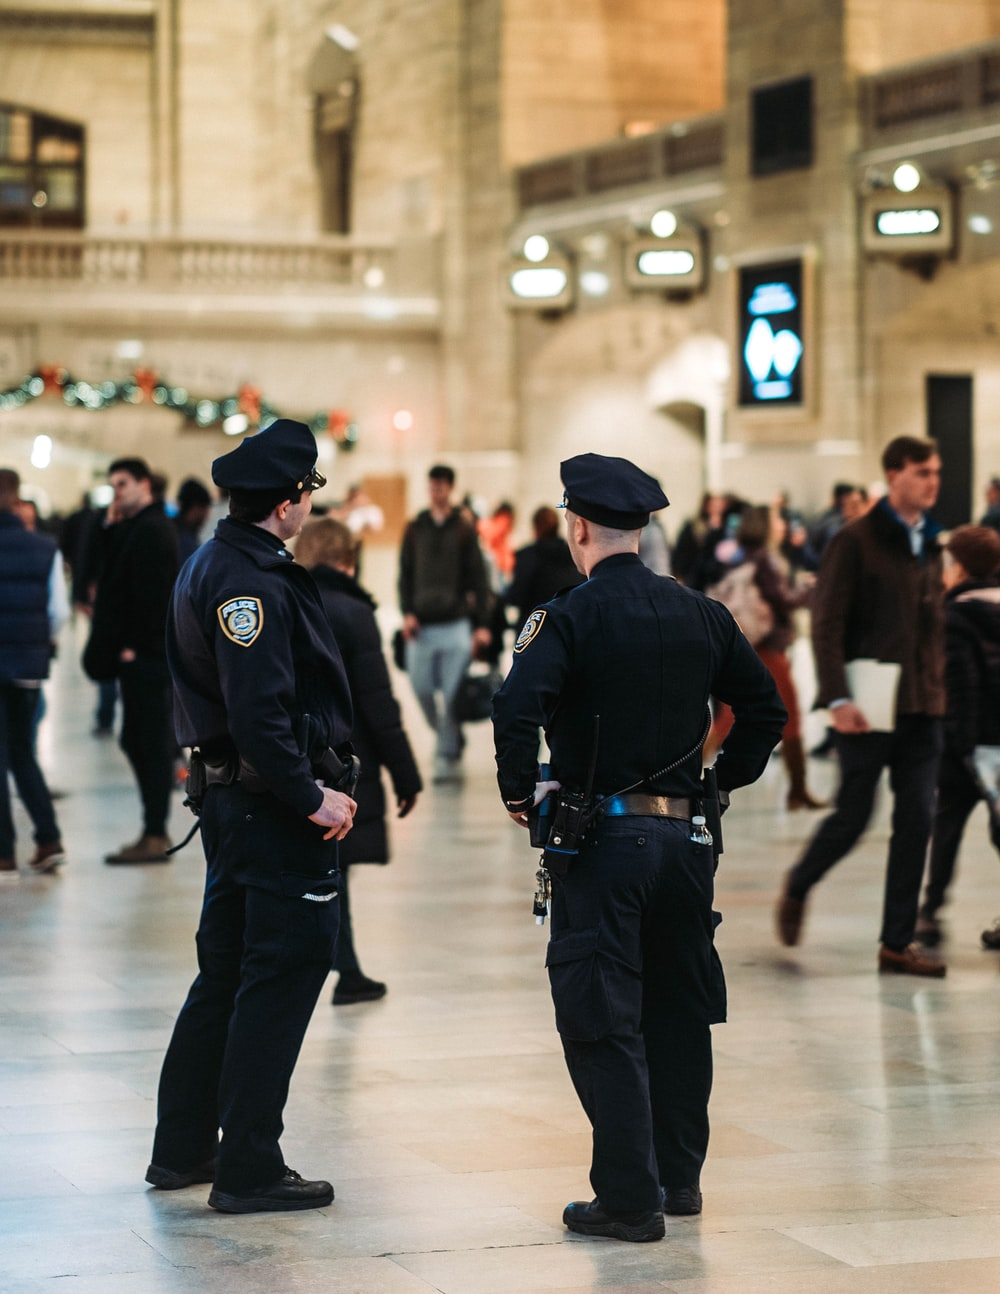 police officers in station